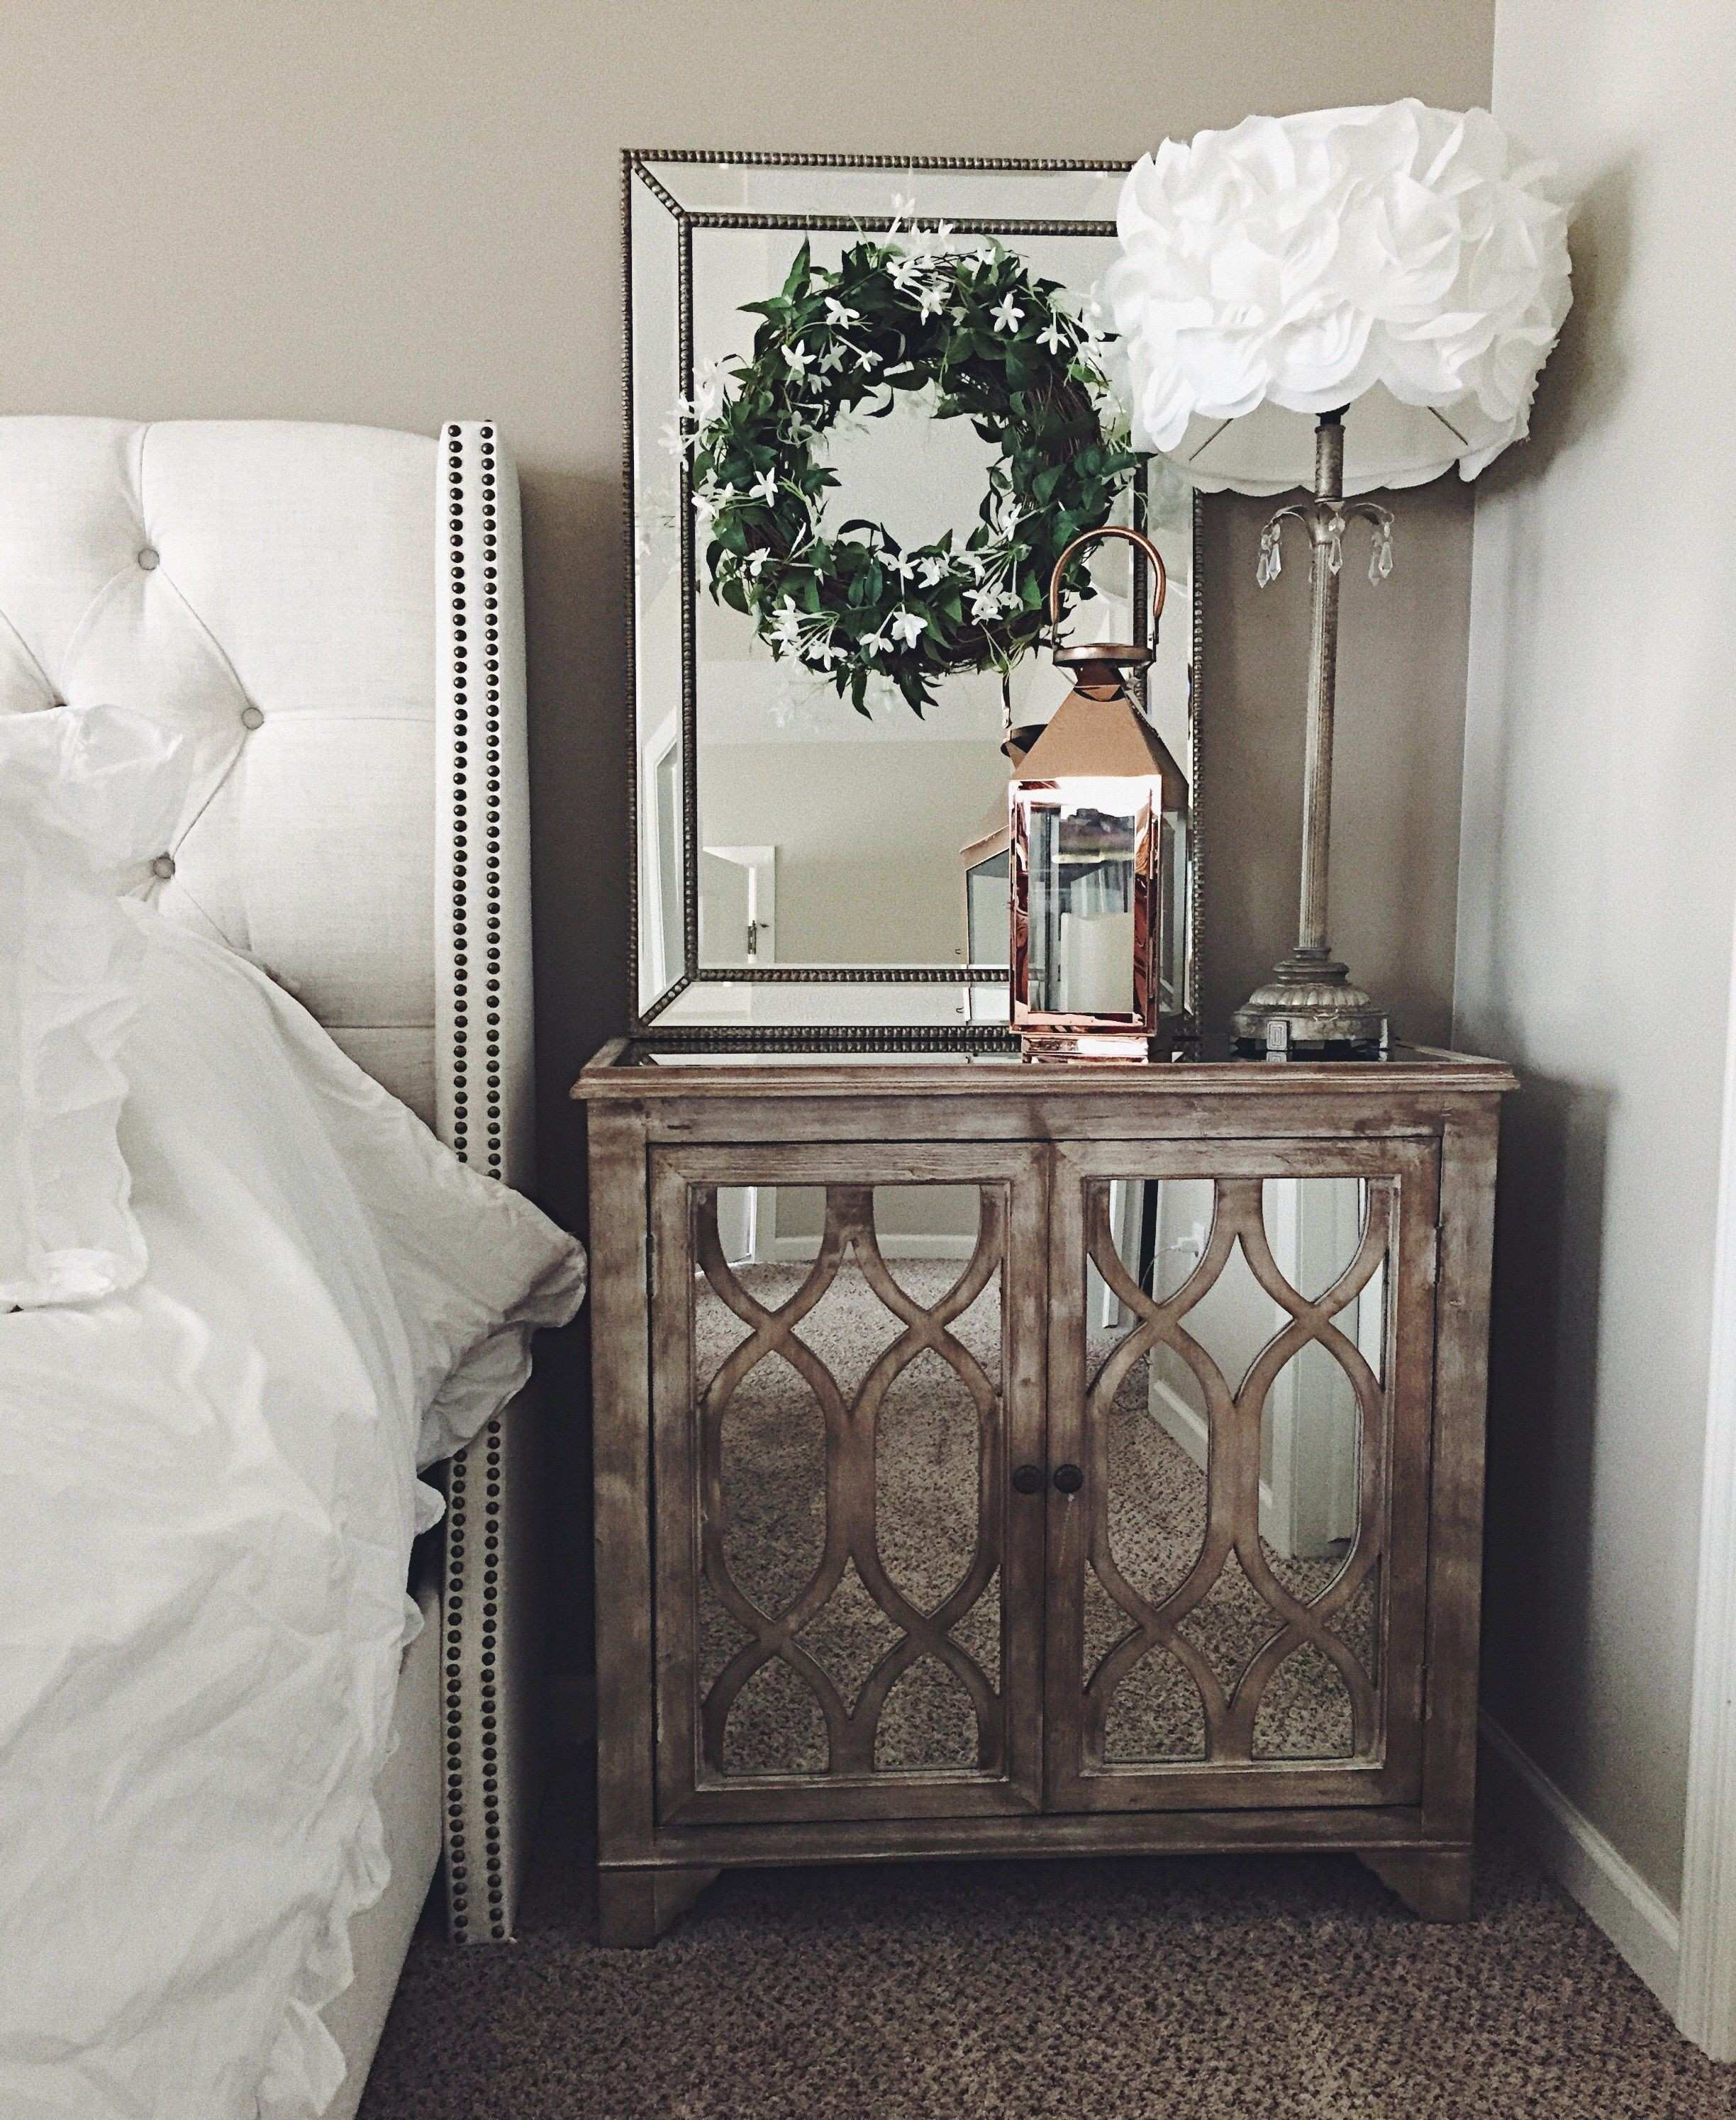 Rustic mirrored nightstand Addyson living mirrors with wreath